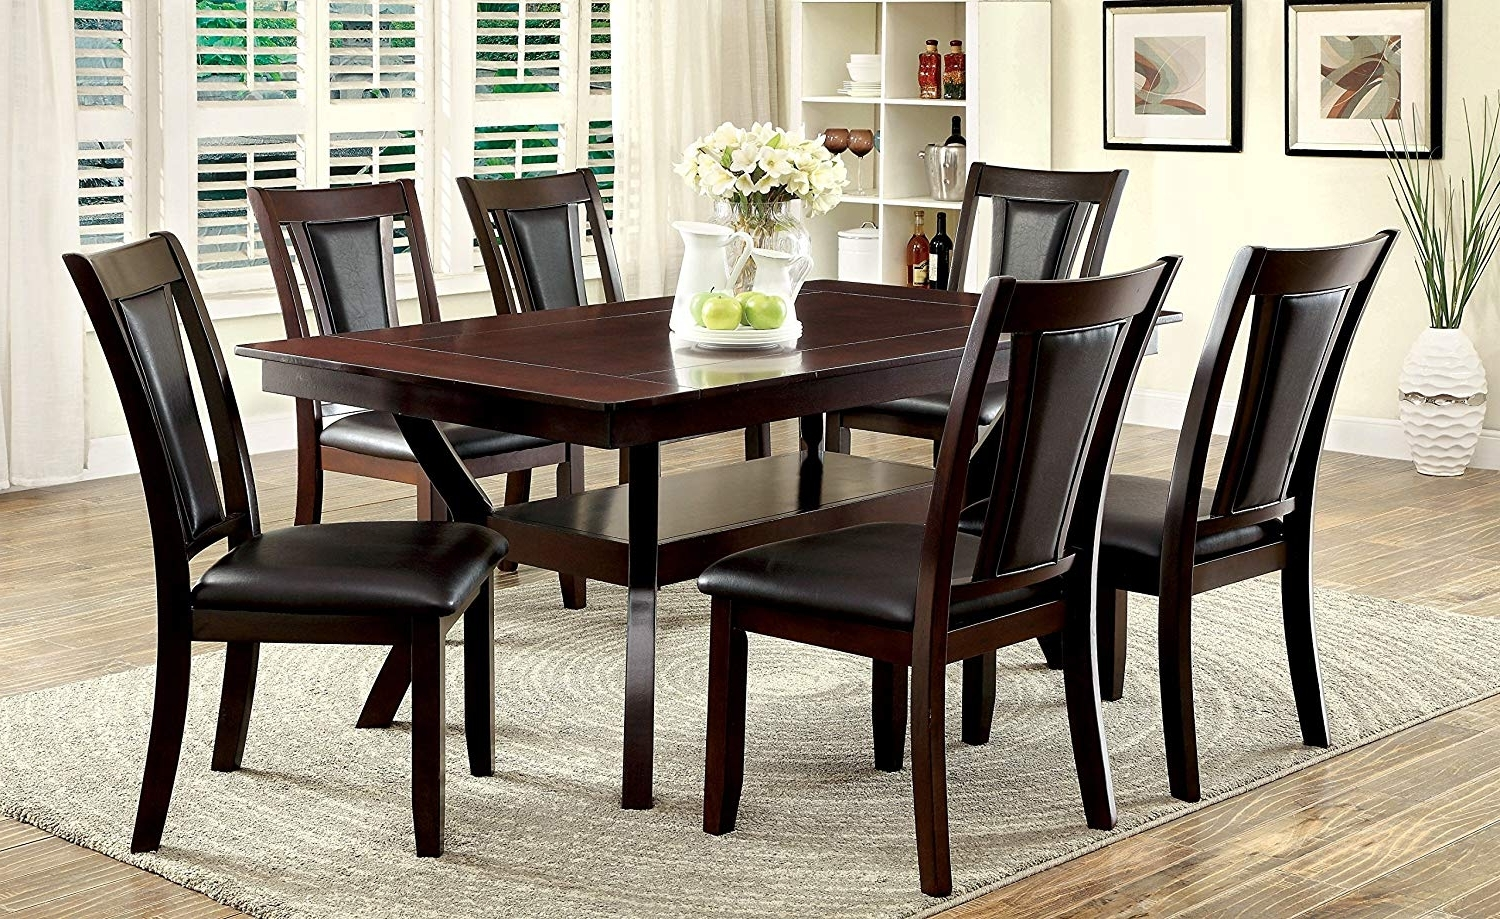 Amazon – Furniture Of America Dalcroze 7 Piece Modern Dining Set Pertaining To 2018 Amos 7 Piece Extension Dining Sets (Gallery 14 of 25)